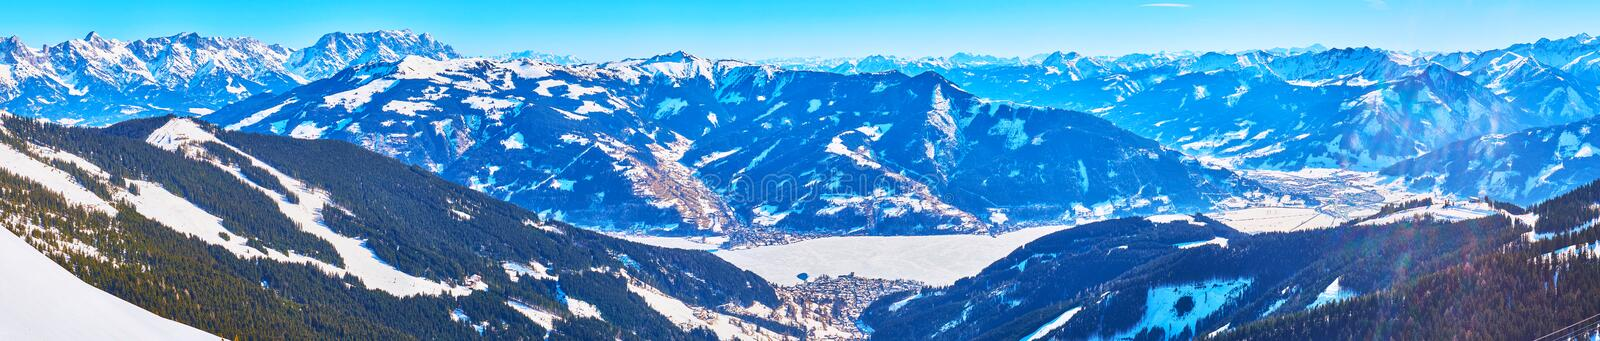 Panorama of Zeller See valley and Alpine range, Zell am See, Austria royalty free stock photography